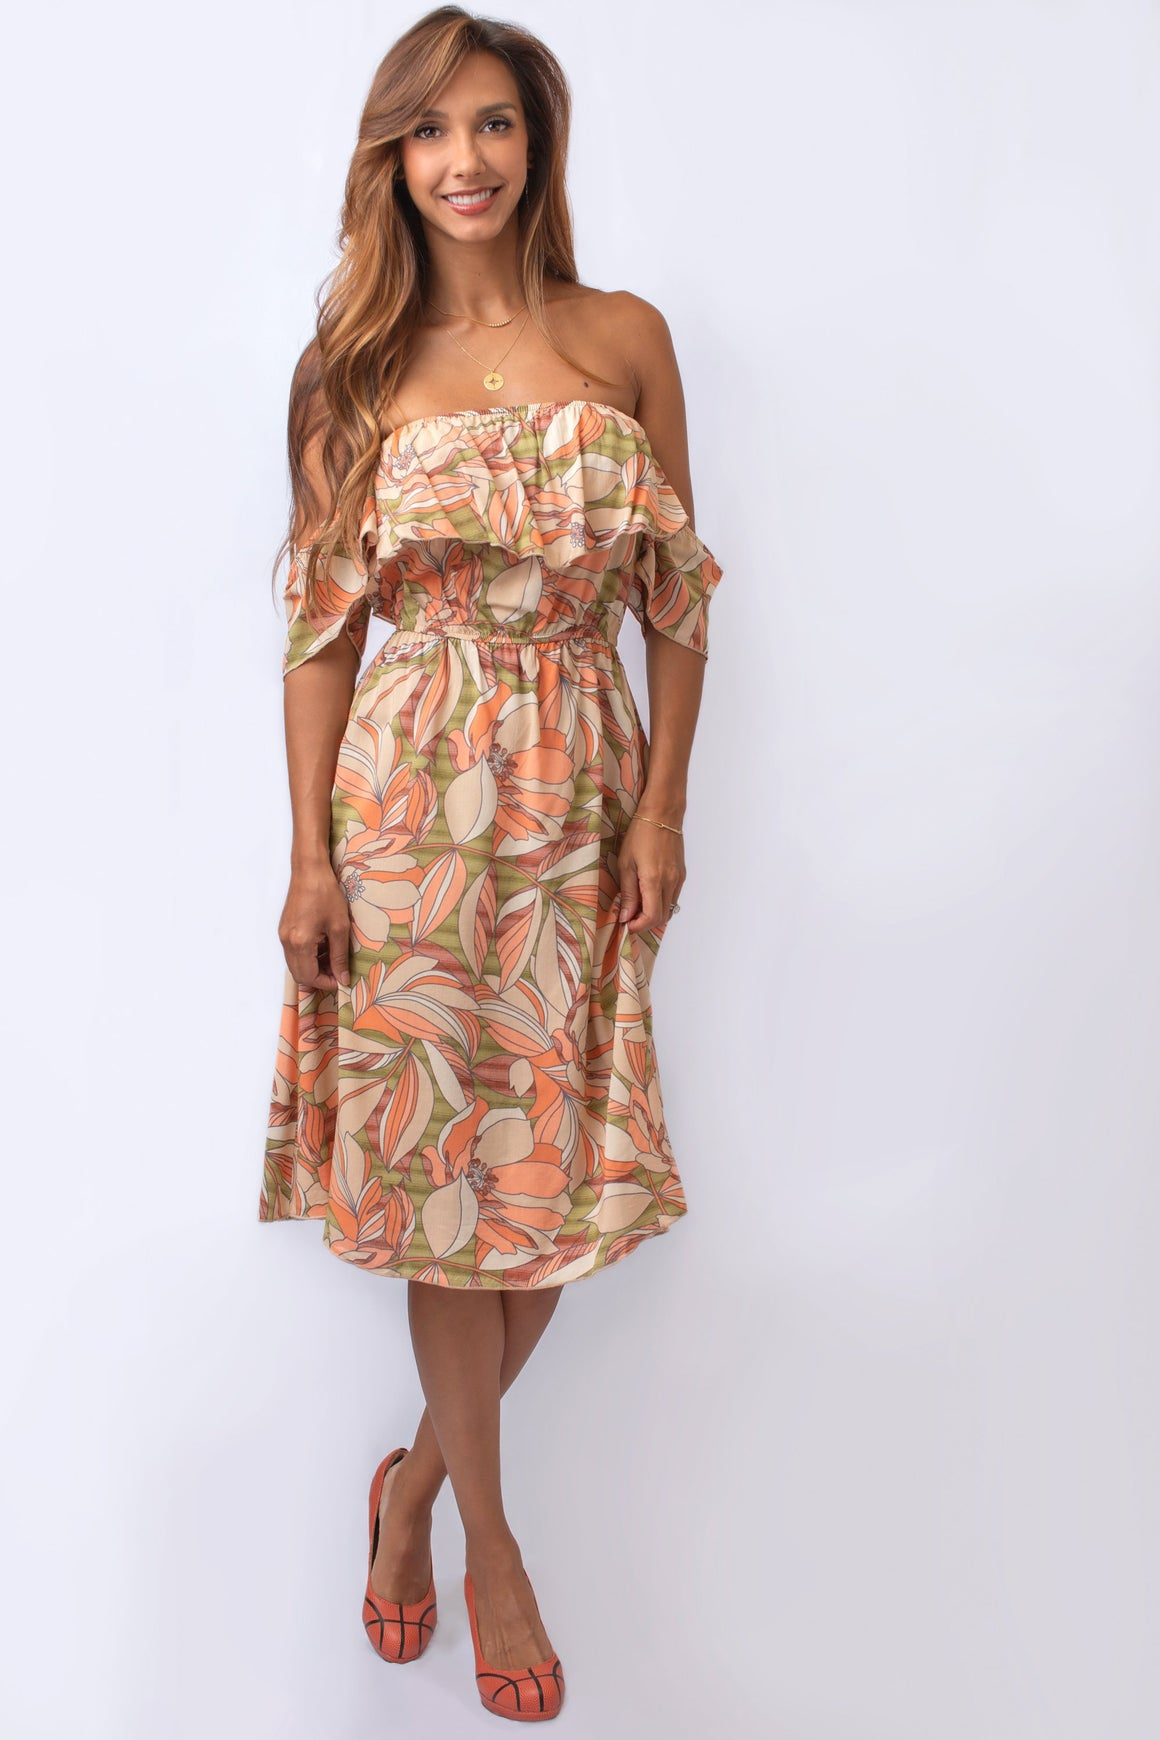 Olive and Peach Floral Off-the-Shoulder Dress